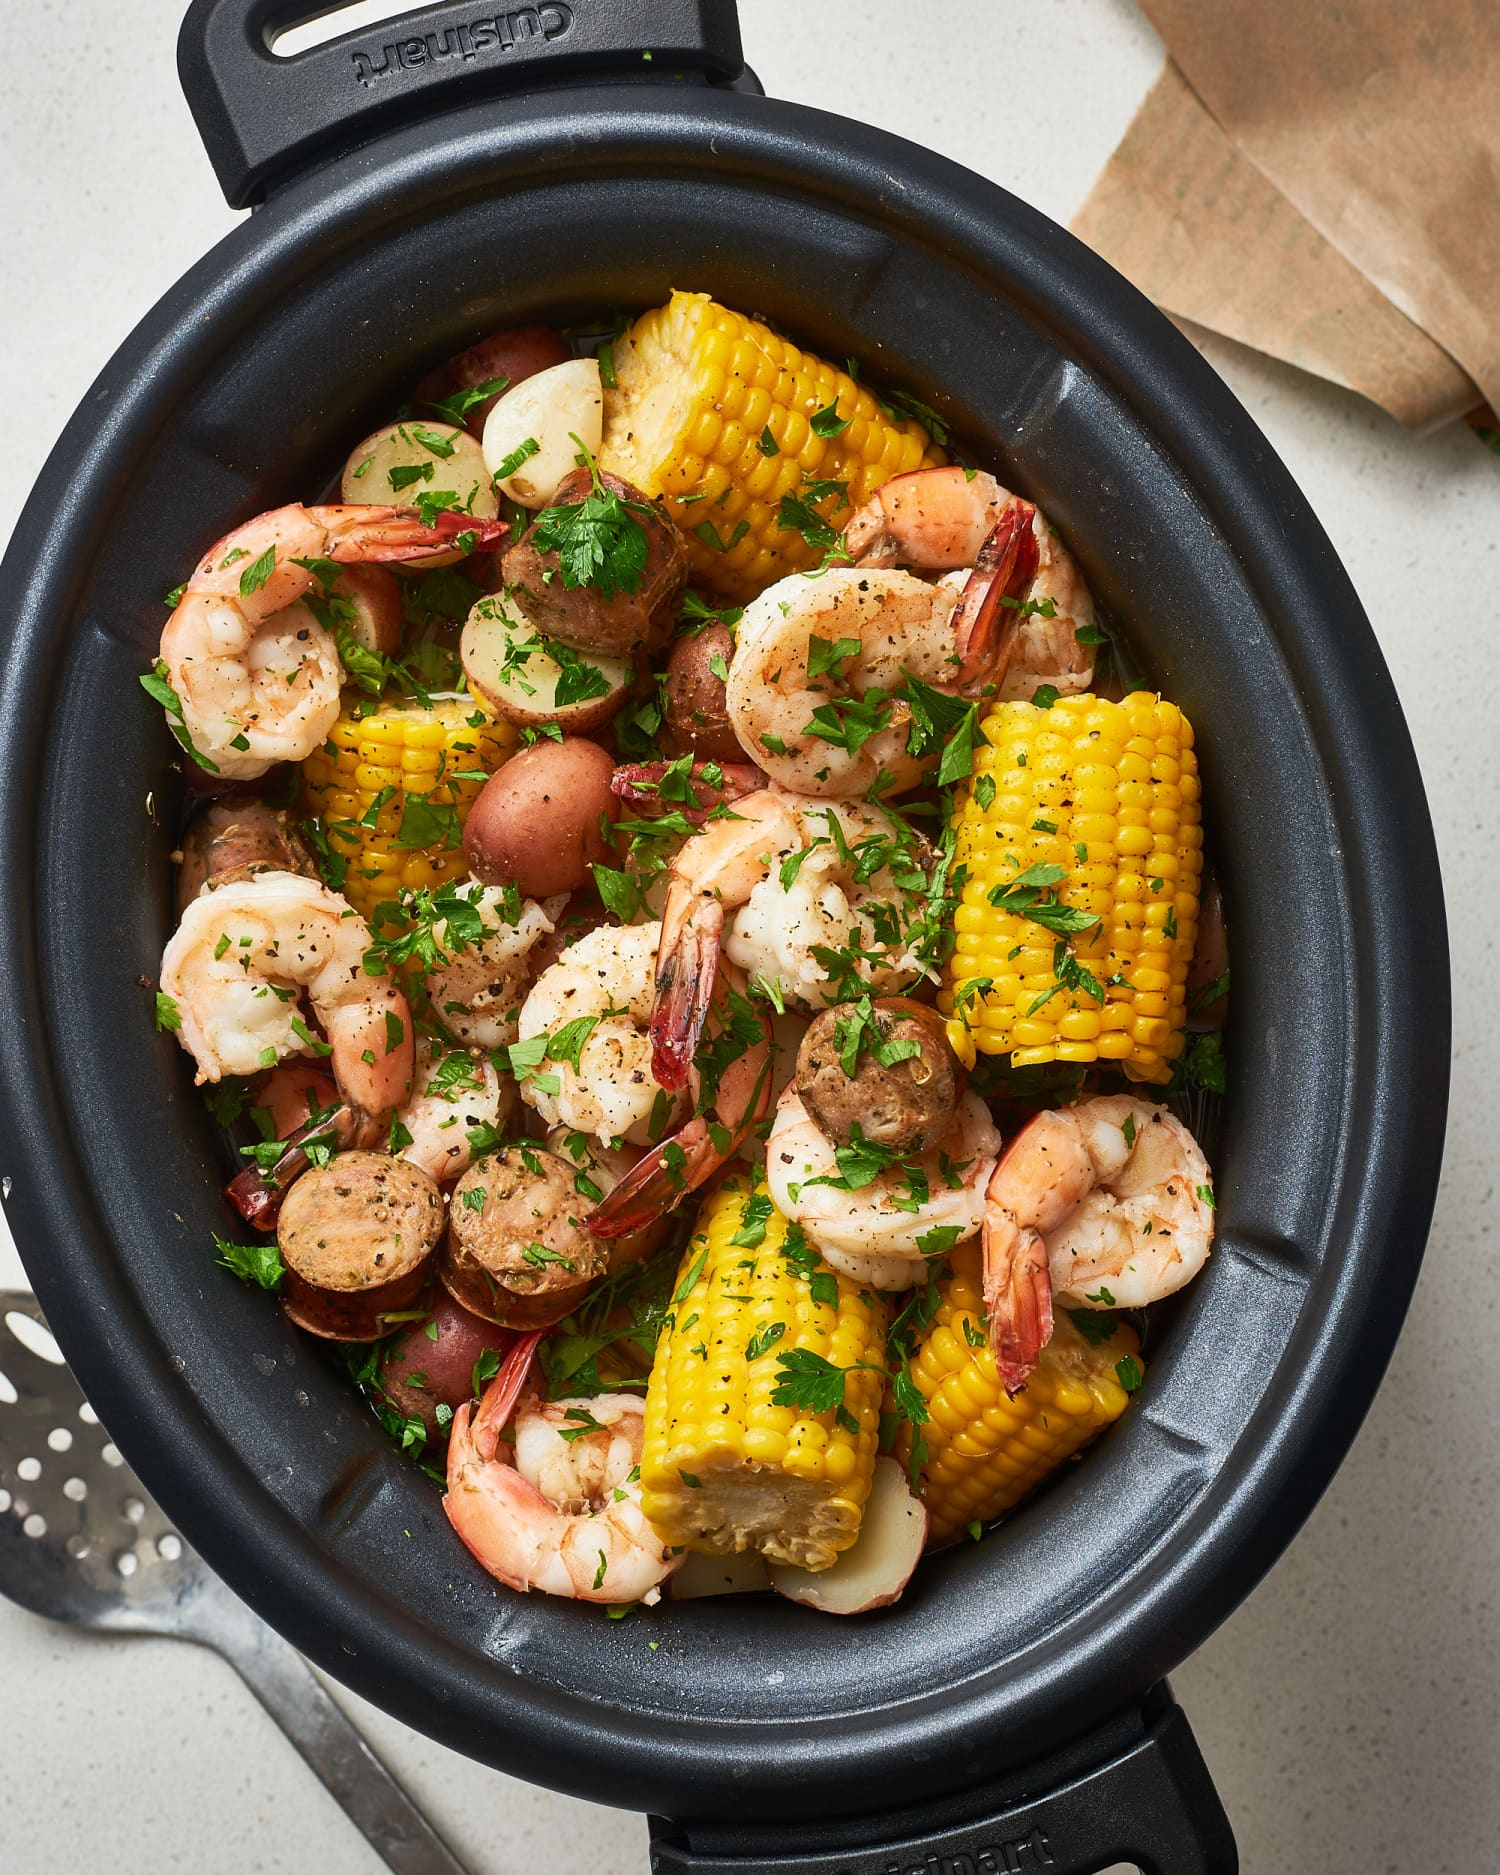 How To Make the Best Shrimp Boil in the Slow Cooker